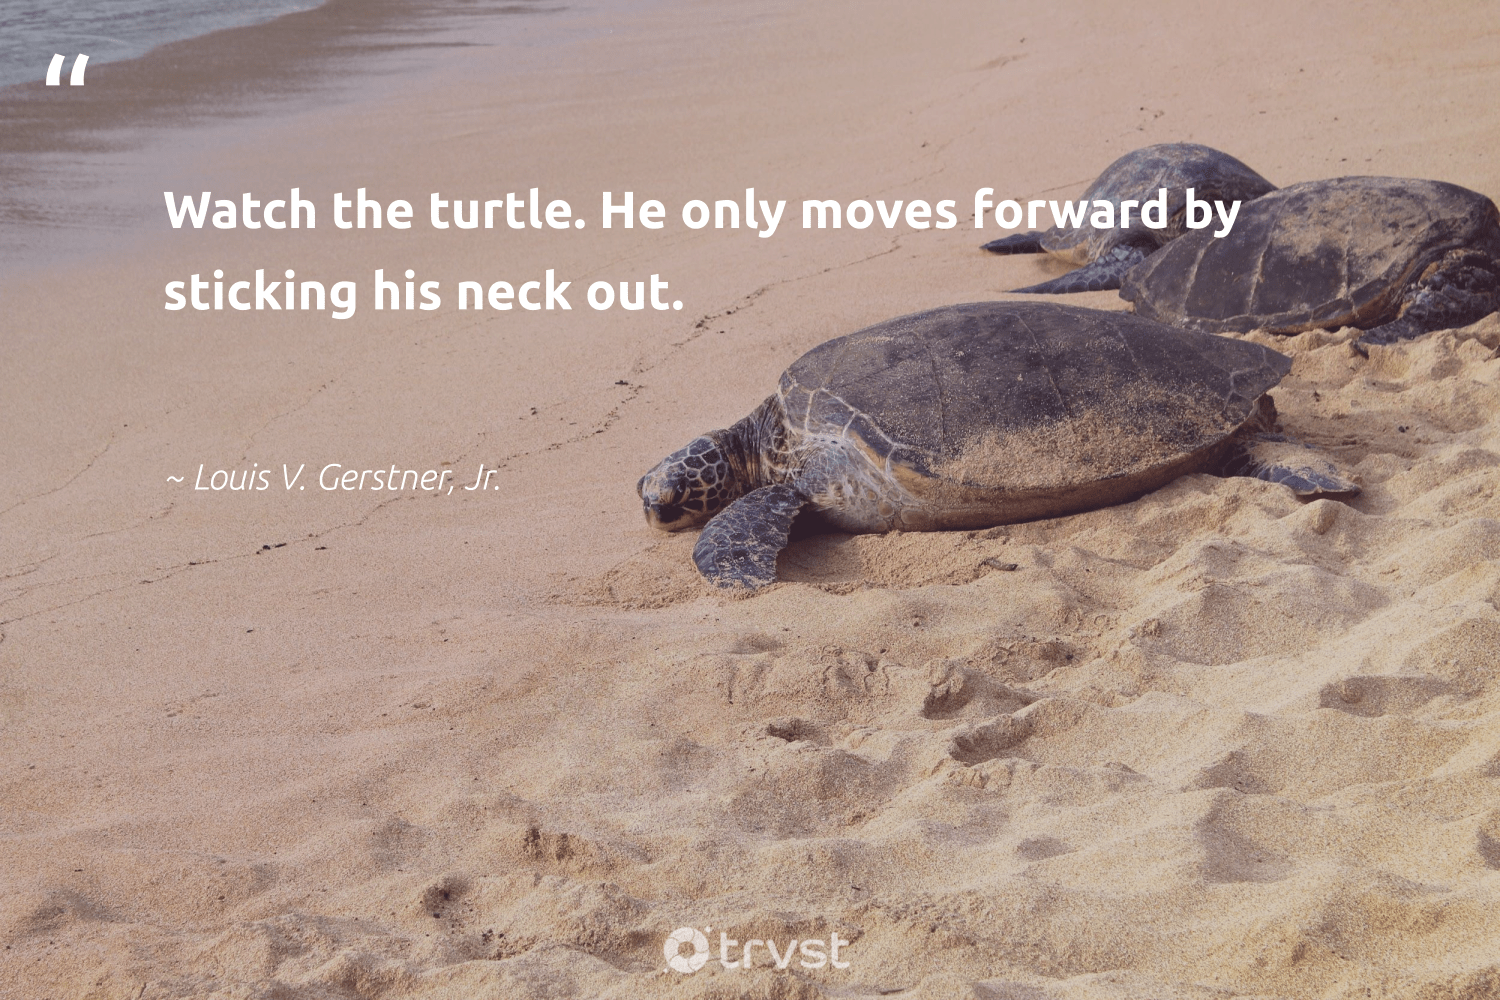 """Watch the turtle. He only moves forward by sticking his neck out.""  - Louis V. Gerstner, Jr. #trvst #quotes #turtle #savetheturtle #changetheworld #marinelife #planetearthfirst #wildlifeprotection #gogreen #perfectnature #collectiveaction #sustainability"